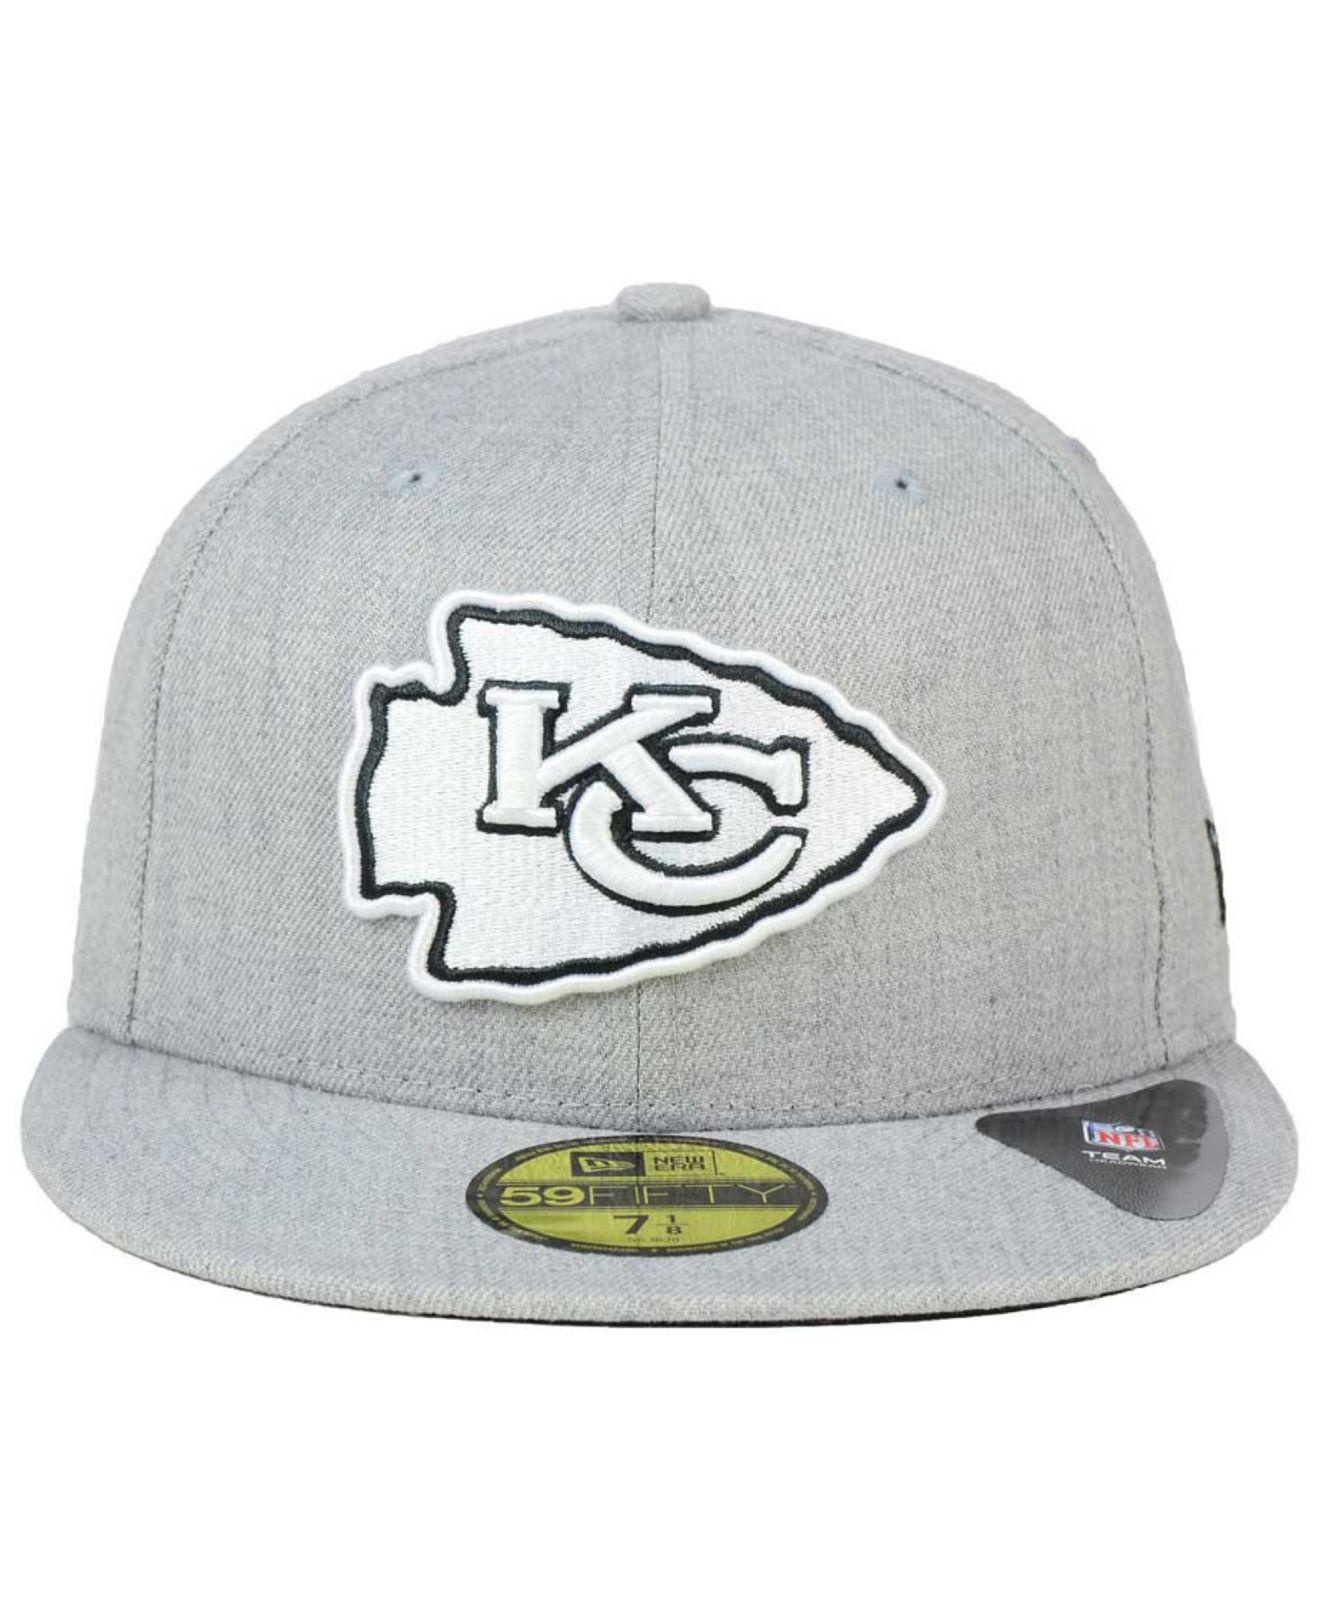 d85a64e1ef7 Lyst - KTZ Kansas City Chiefs Heather Black White 59fifty Cap in Gray for  Men